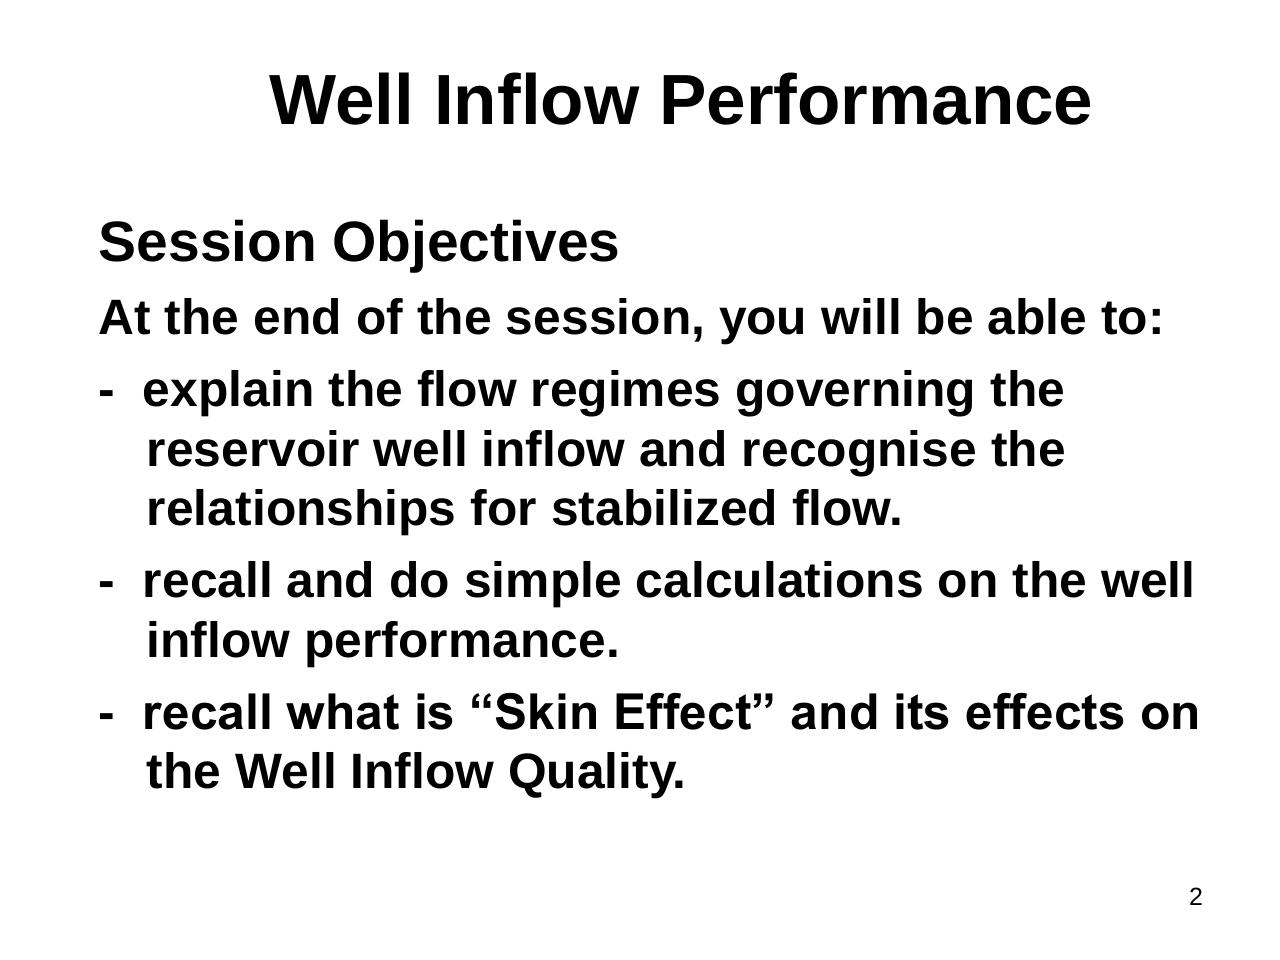 2.5 Well inflow performance1_1 (2).pdf - page 2/60